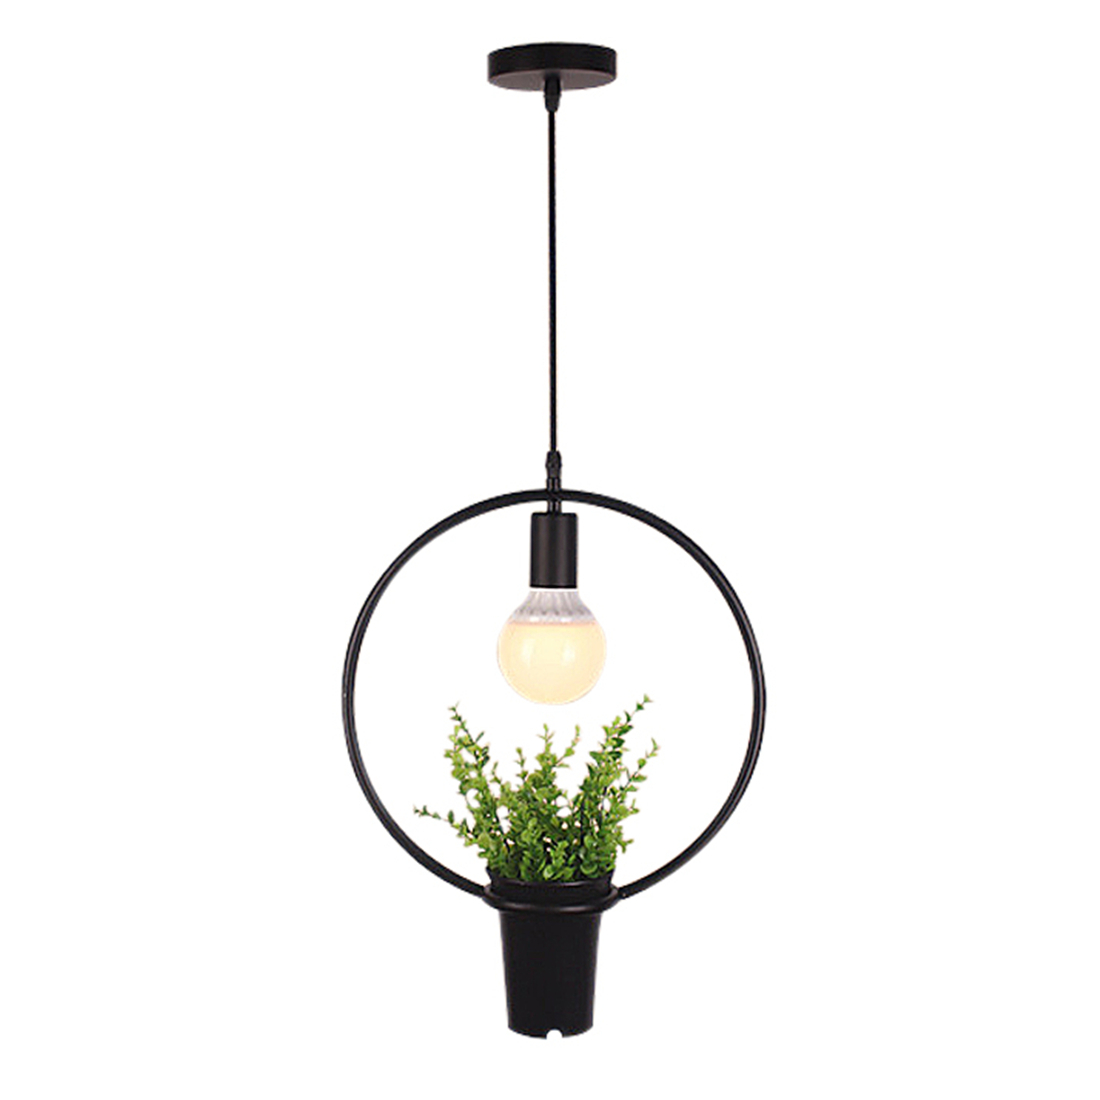 Pendant Light Ring Green Plant Hanging Lamp Retro Industrial Wind Creative Personality Clothing Shop Cafe Restaurant Pendant Light Ring Green Plant Hanging Lamp Retro Industrial Wind Creative Personality Clothing Shop Cafe Restaurant